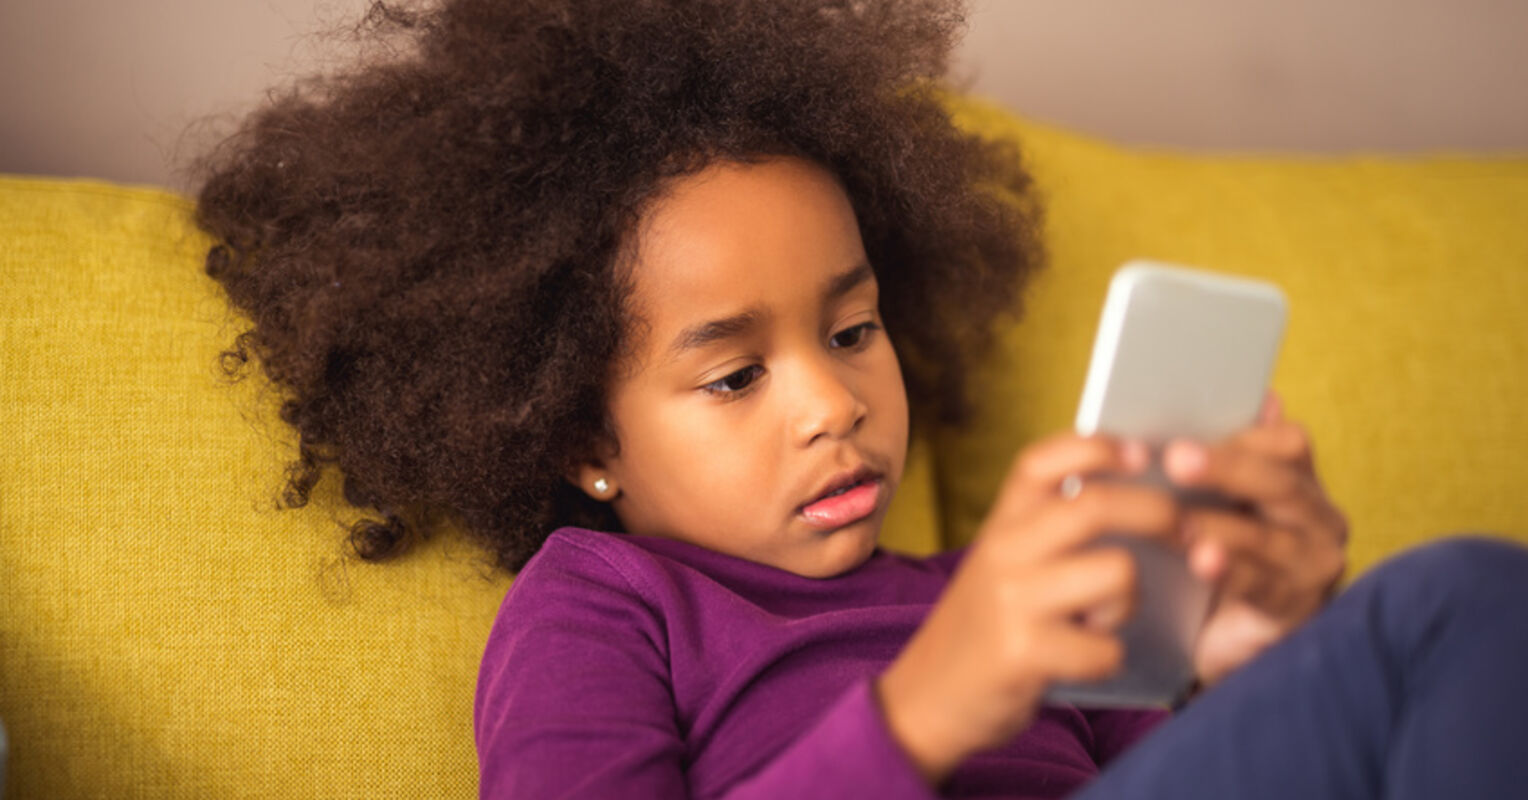 Why Technology Makes It Hard to Raise Mentally Strong Kids